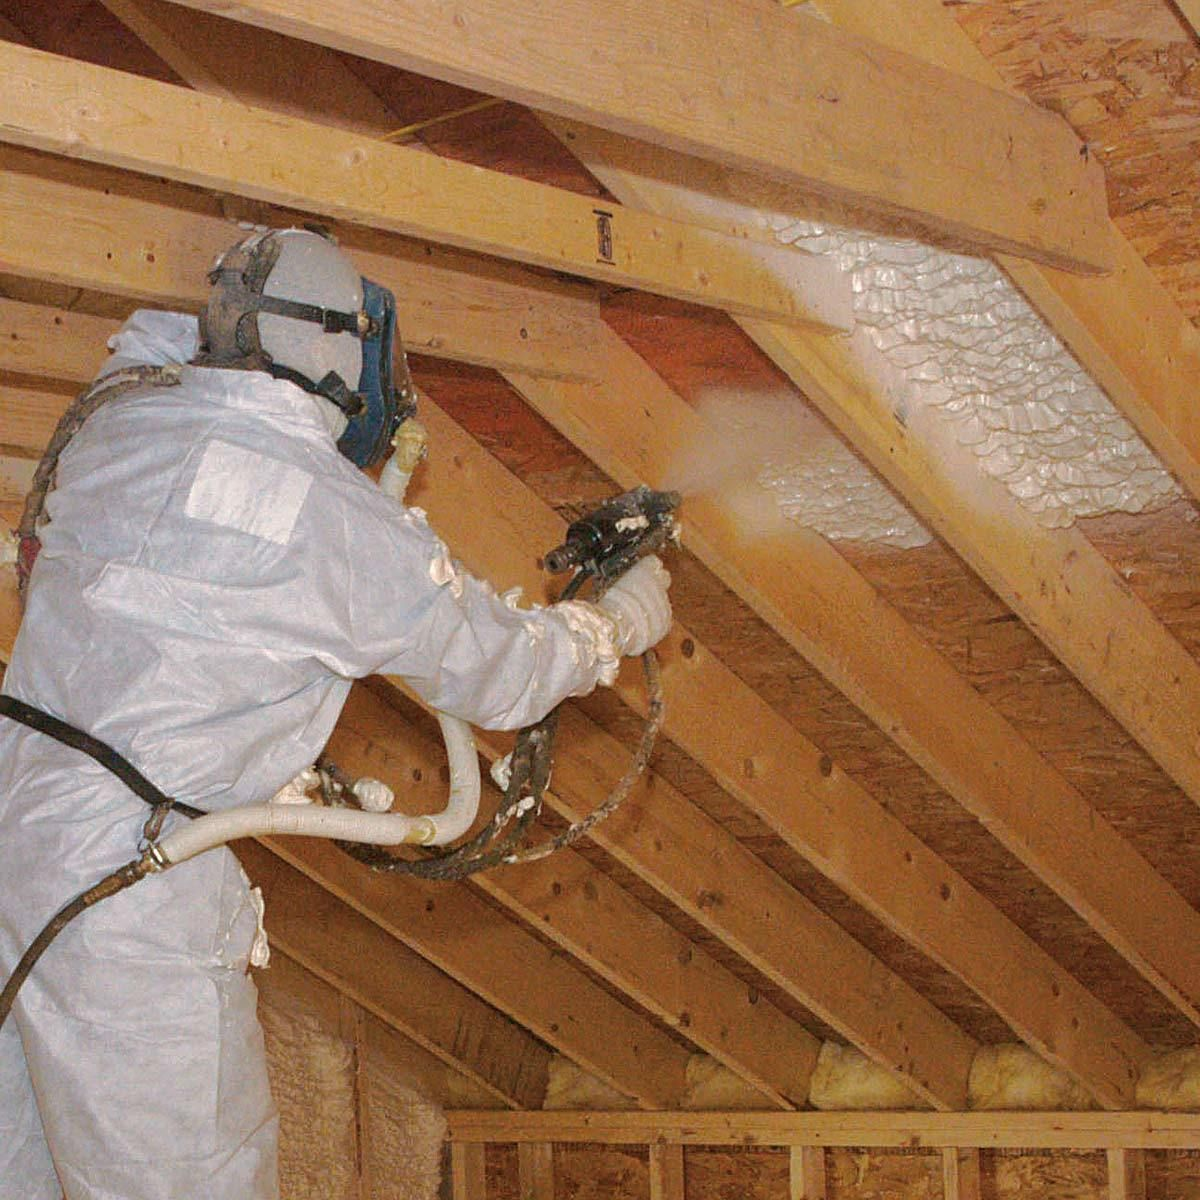 20 Things You Absolutely Must Insulate Before Winter Cathedral Ceiling Insulation Attic Insulation Ceiling Insulation